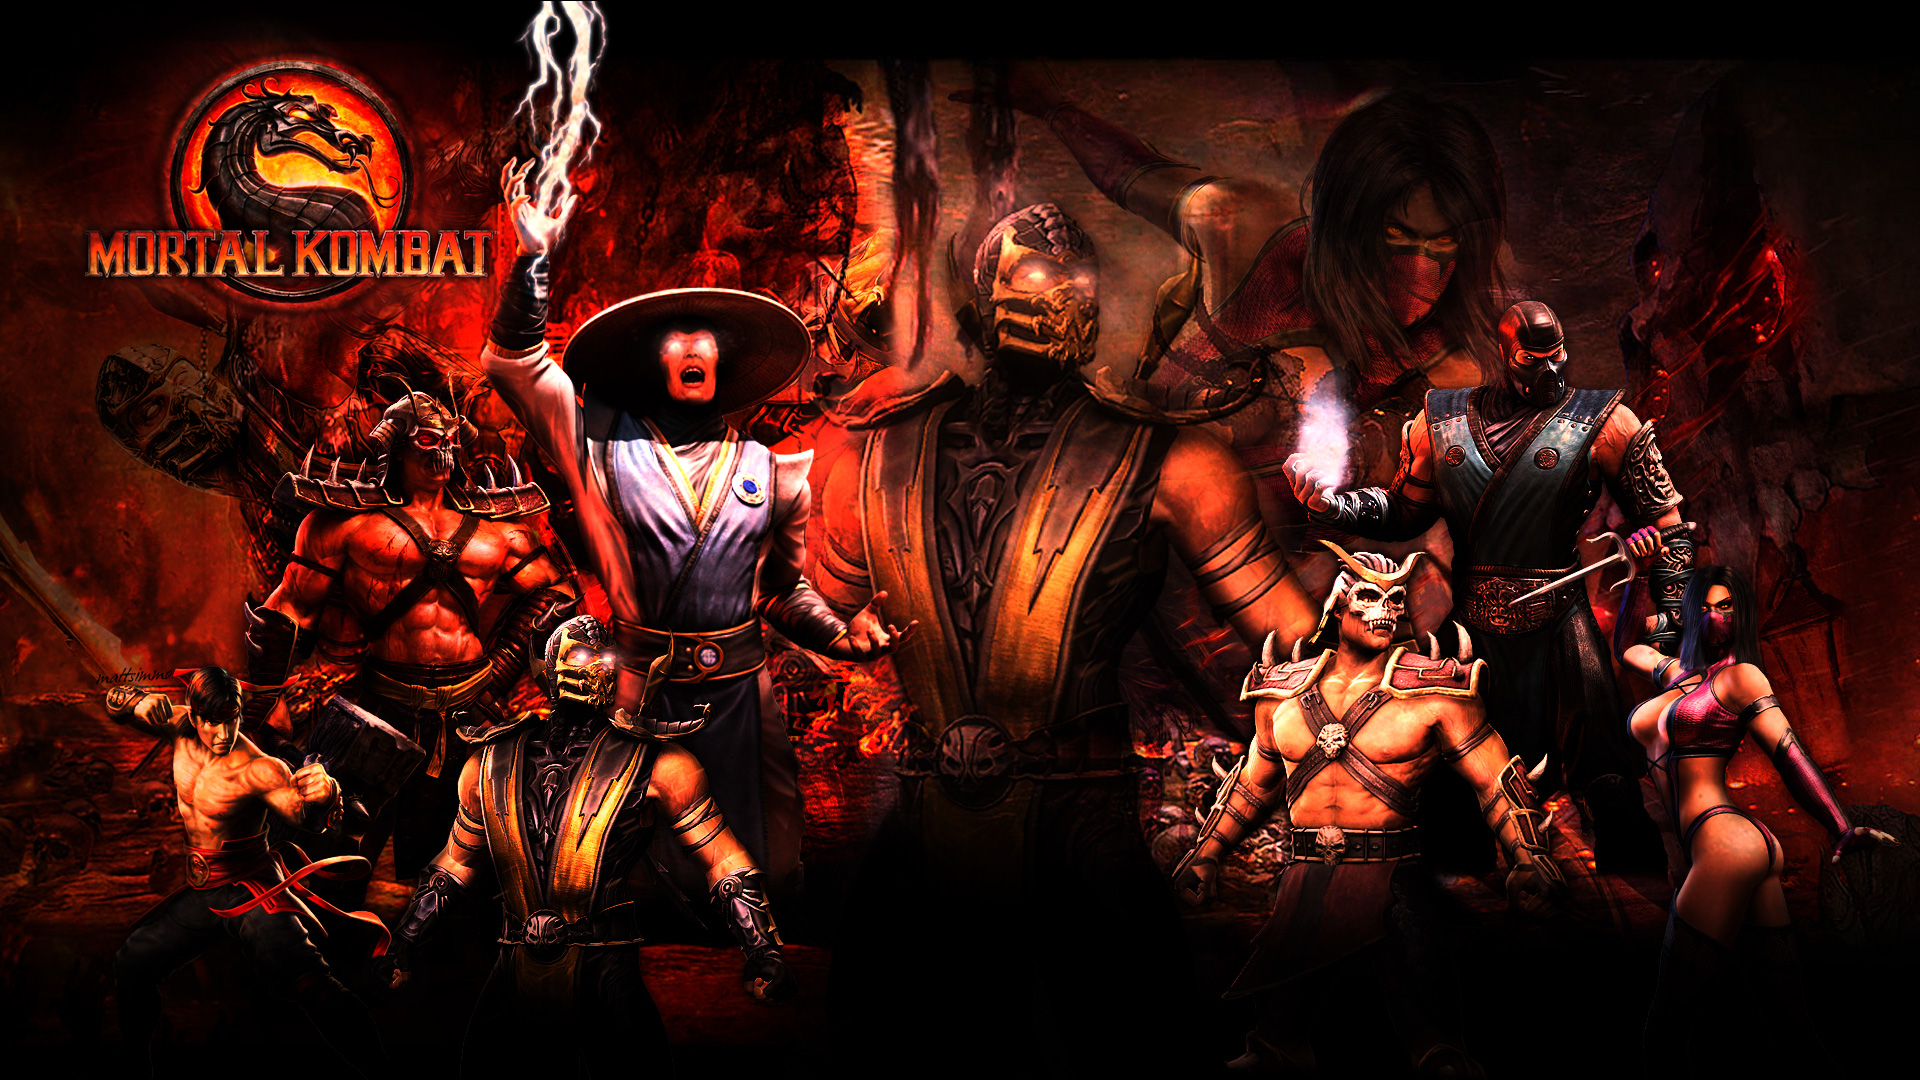 Mortal Kombat 9 Wallpapers in HD Page 4 1920x1080